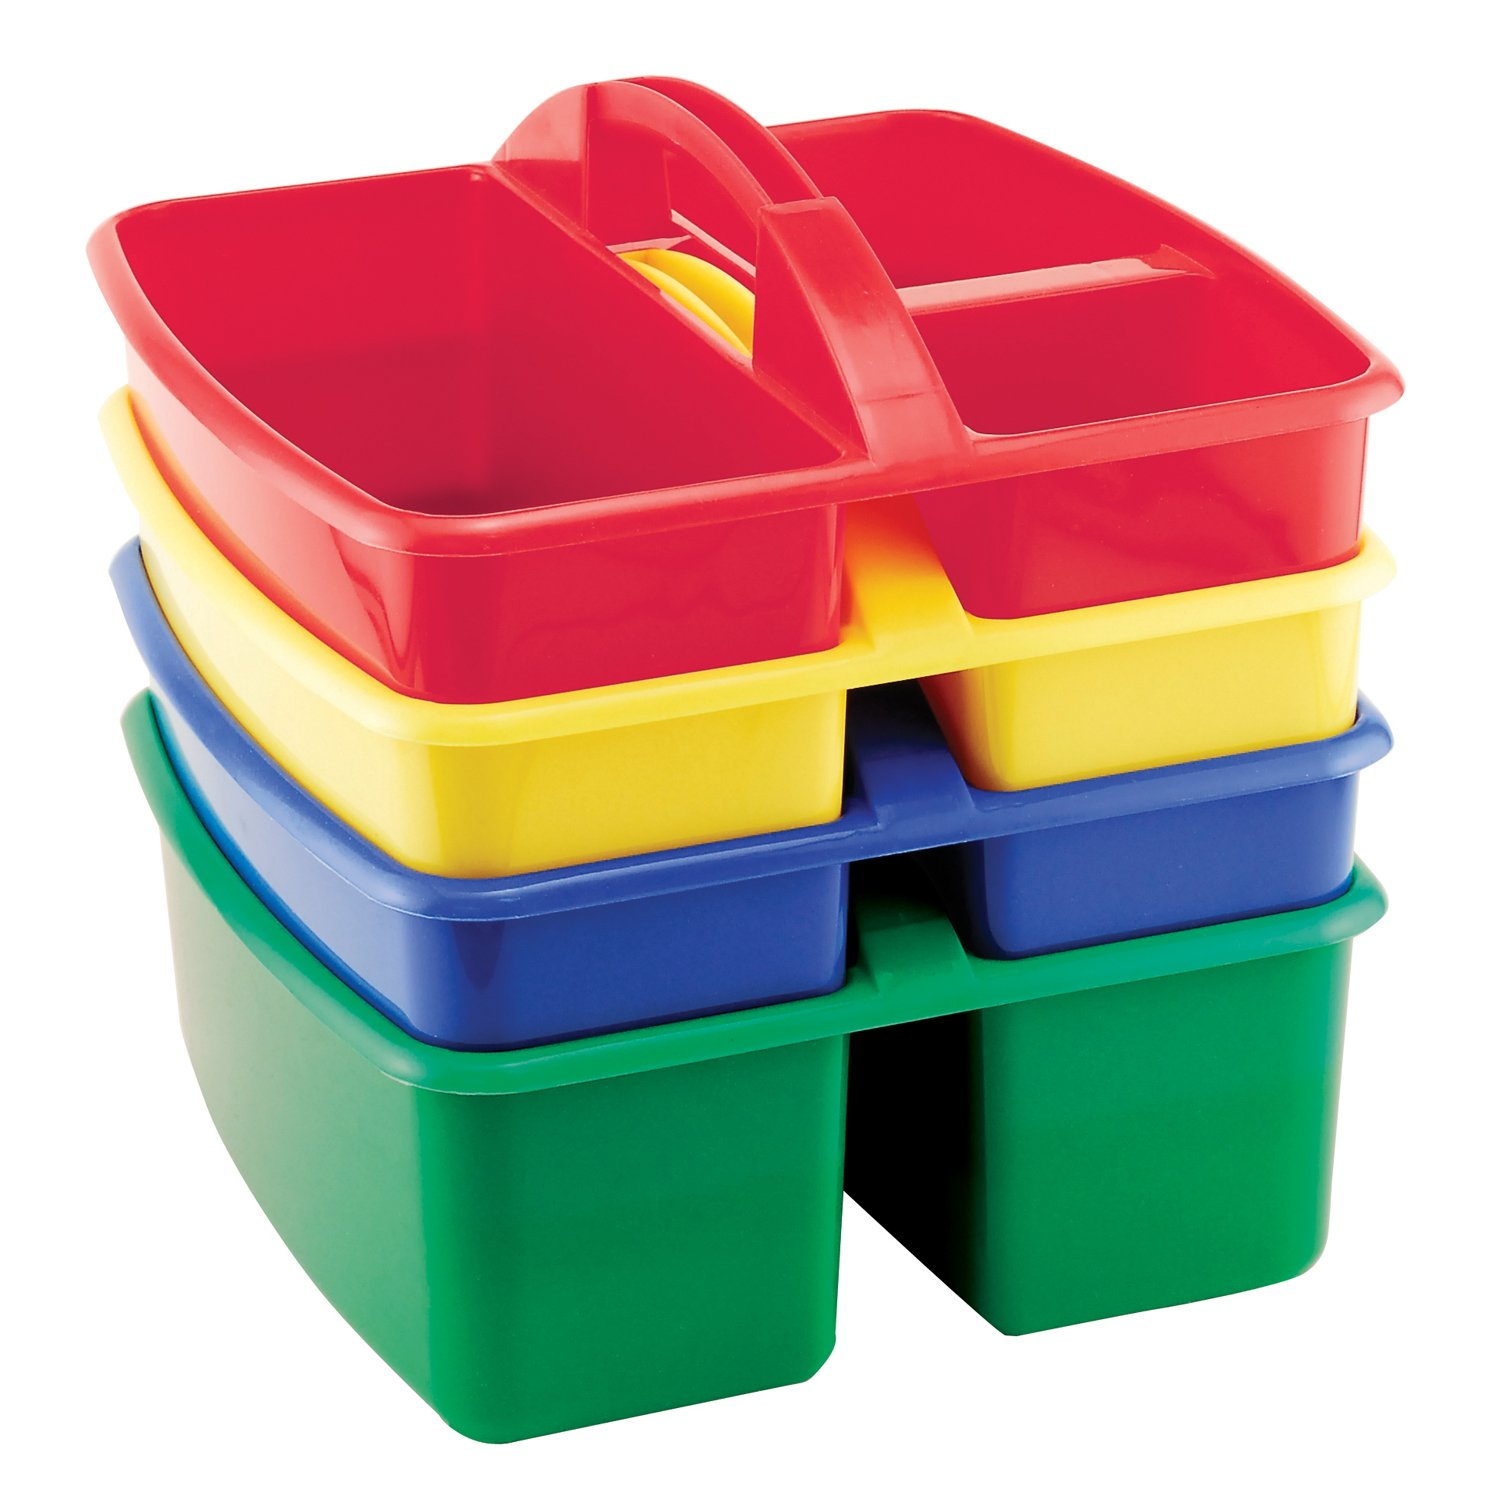 Amazon.com Early Childhood Resources 3 Compartment Small Caddy - Assorted Home u0026 Kitchen  sc 1 st  Amazon.com & Amazon.com: Early Childhood Resources 3 Compartment Small Caddy ...